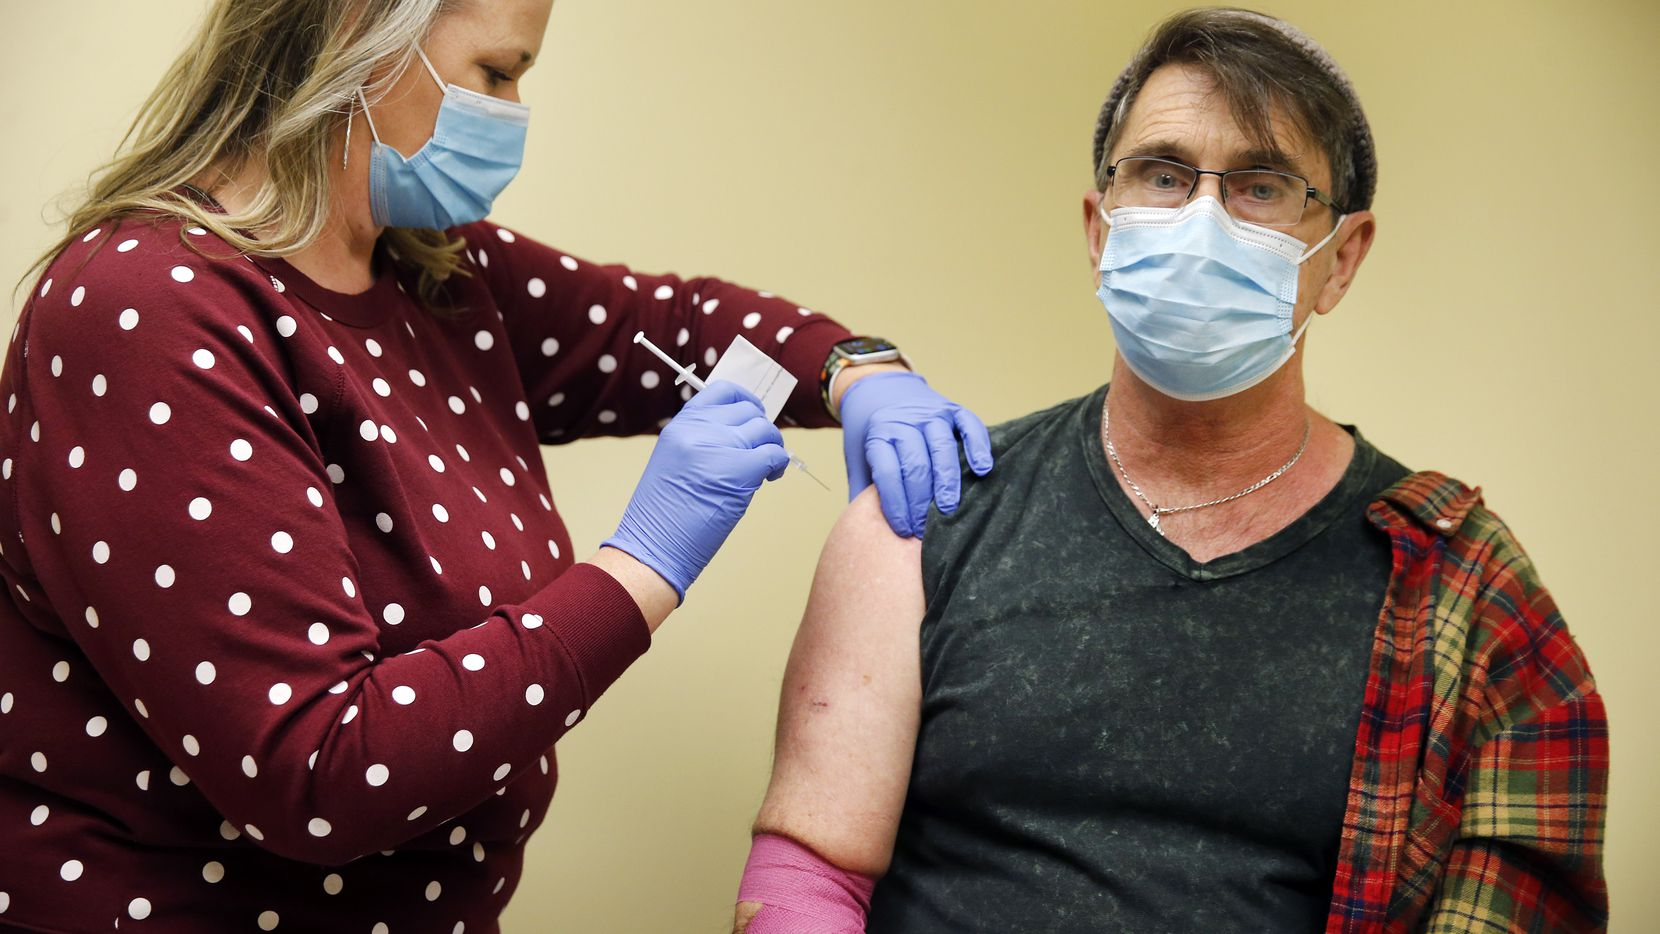 Clinical research project manager Jody Rogers administers the second of two AstraZeneca Phase III COVID trial shots to Robert Lynn of Dallas at the Prism Health North Texas location in Oak Cliff, Thursday, December 3, 2020. Lynn, a public health volunteer, doesn't know if he received the vaccine or a placebo. (Tom Fox/The Dallas Morning News)